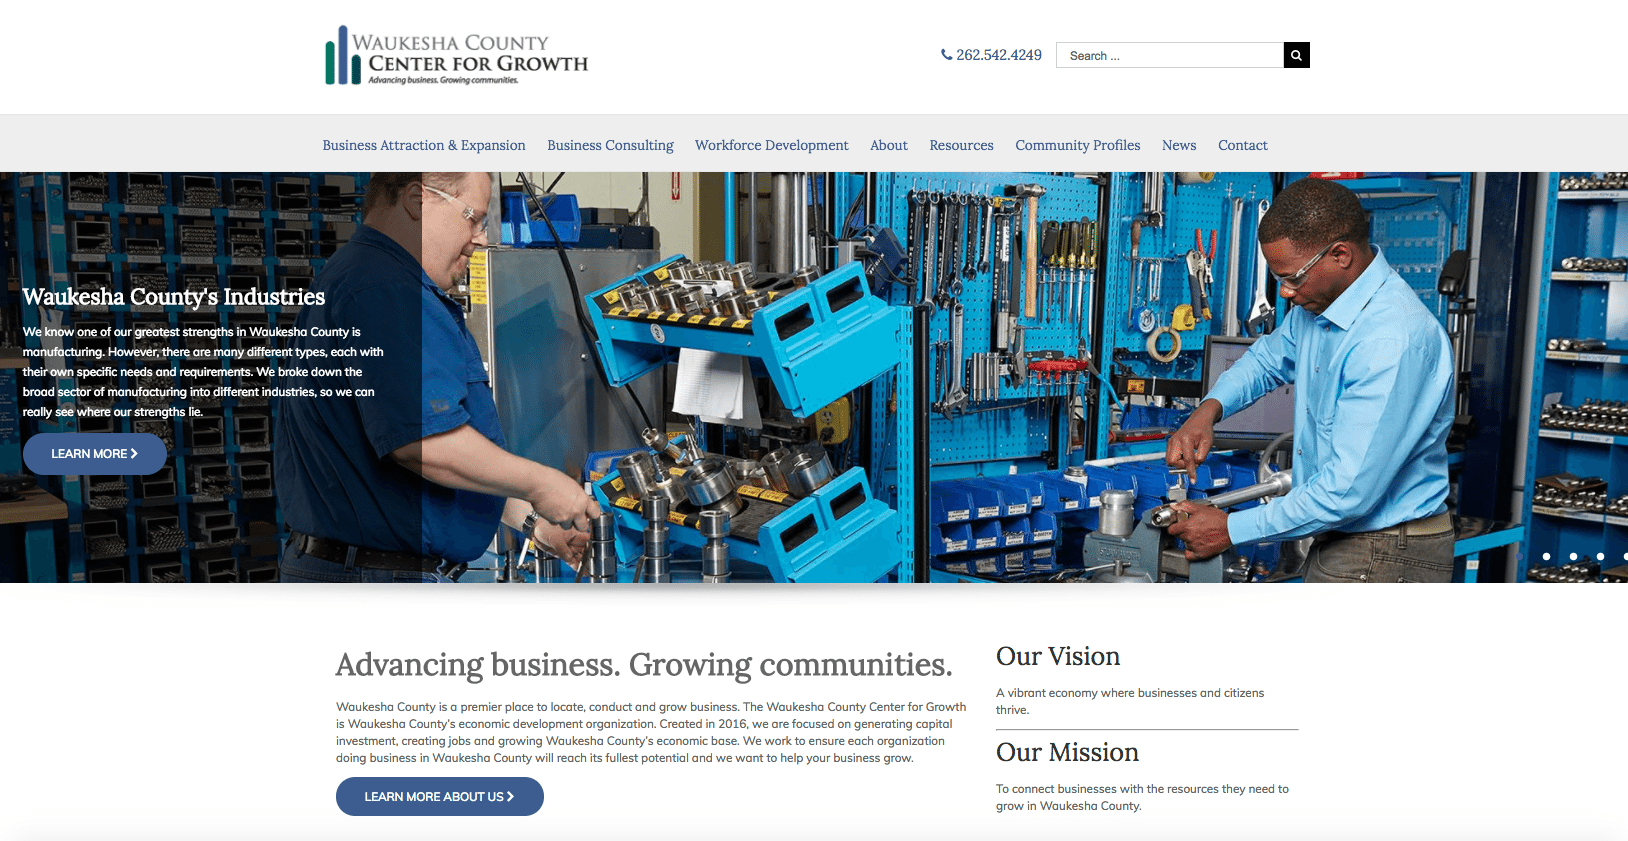 Waukesha County Center for Growth homepage